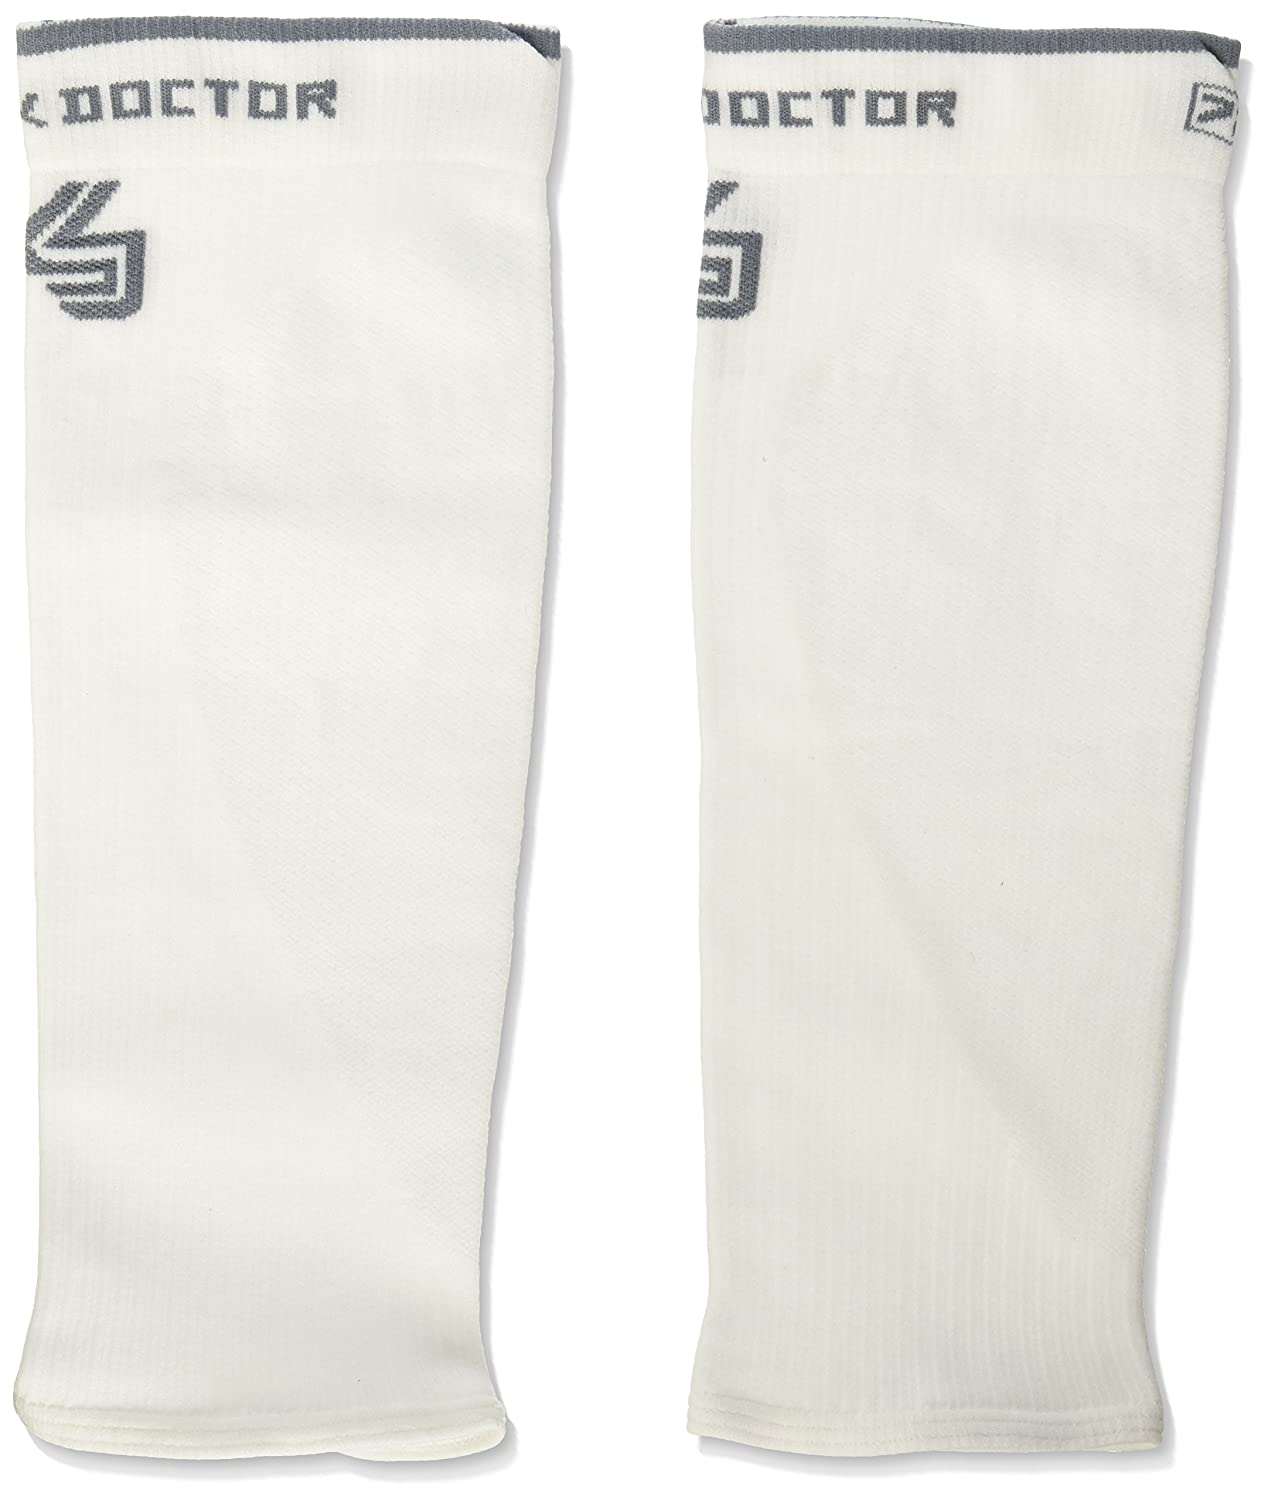 6d0951ea66 Amazon.com: Shock Doctor SVR Recovery Compression Calf Sleeve: Sports &  Outdoors